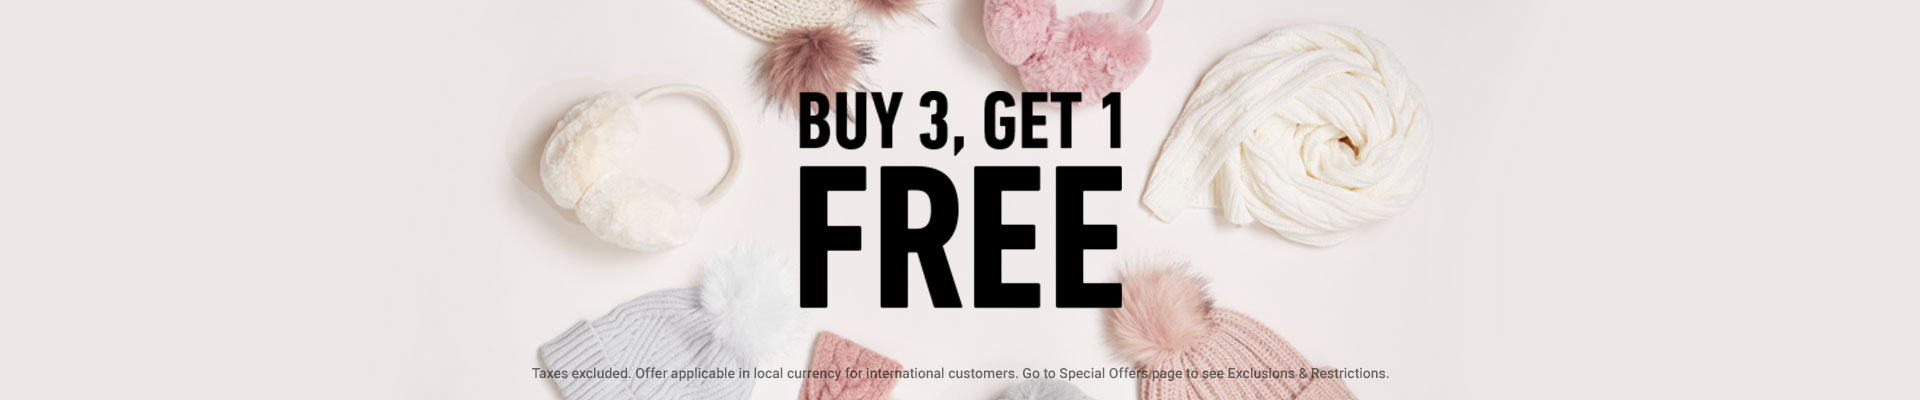 BUY 3, GET 1 FREE *Taxes excluded. Offer applicable in local currency for international customer. Go to Special Offers page to see Exclusions & Restrictions.